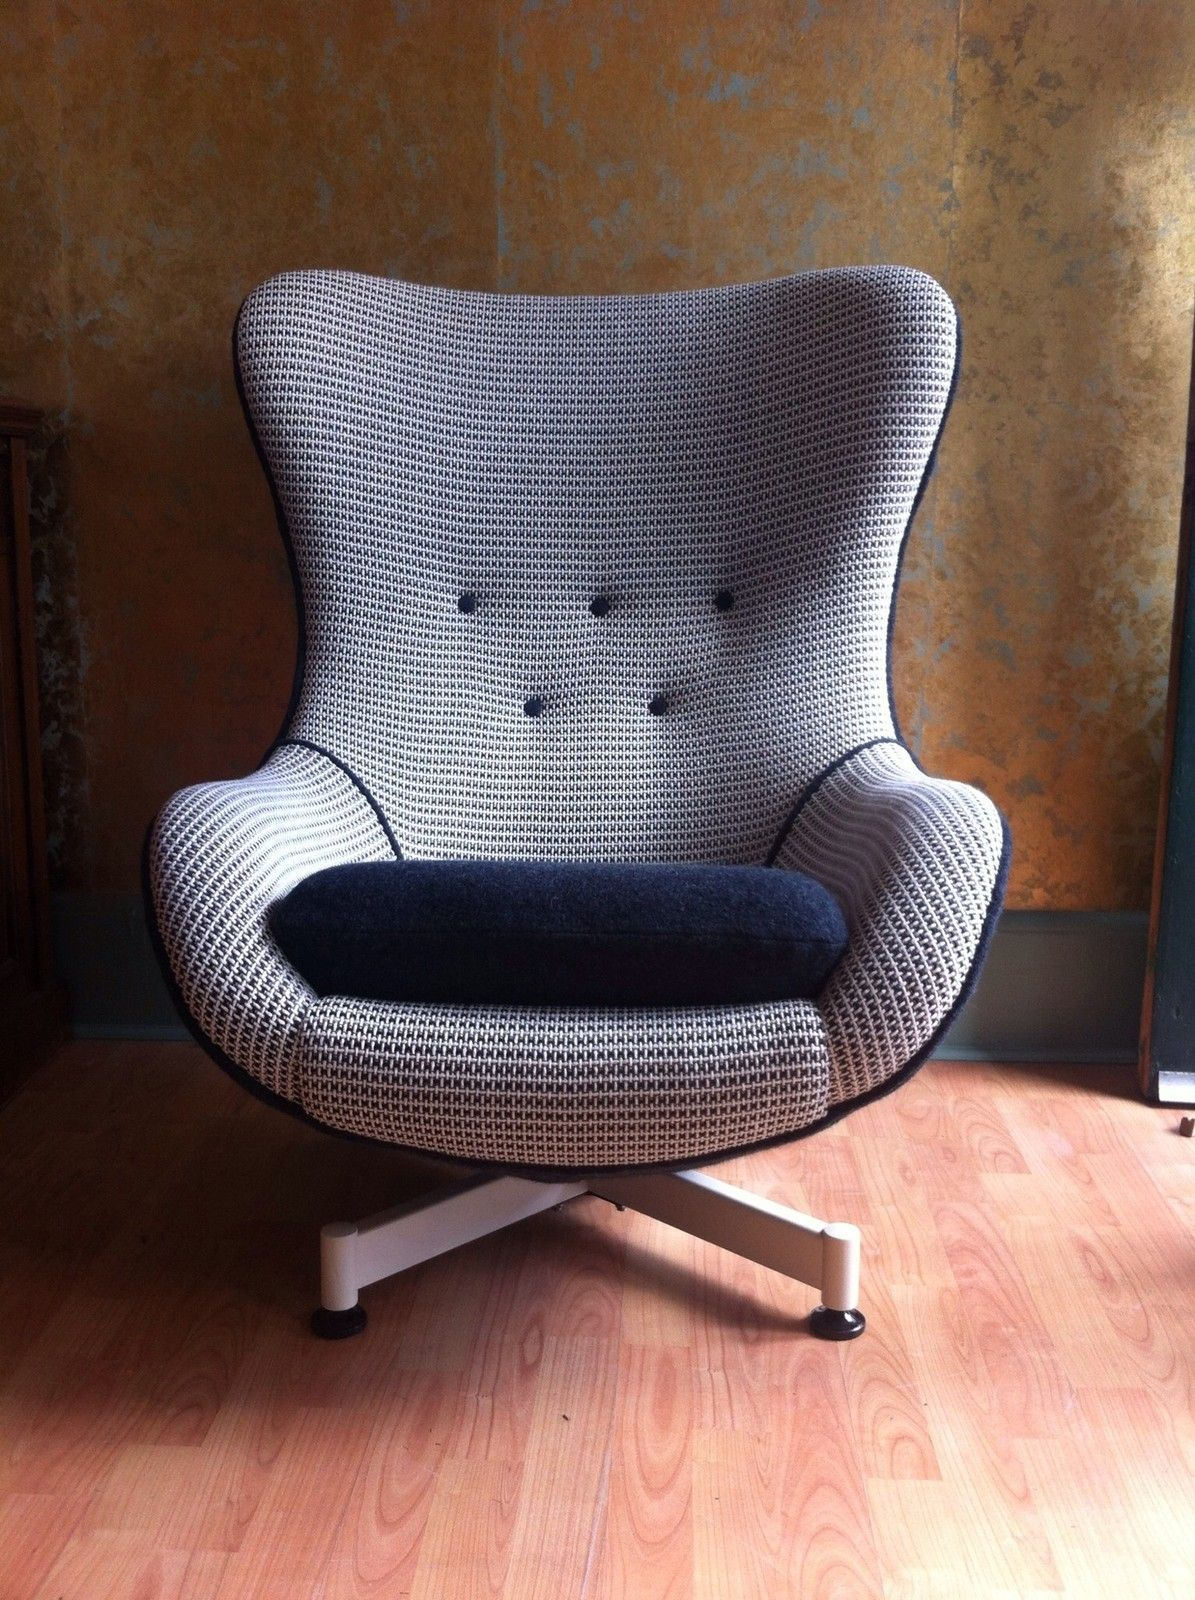 Reupholster Egg Chair Original 1960s Thomas Greaves Egg Chair Mid Century Mod In